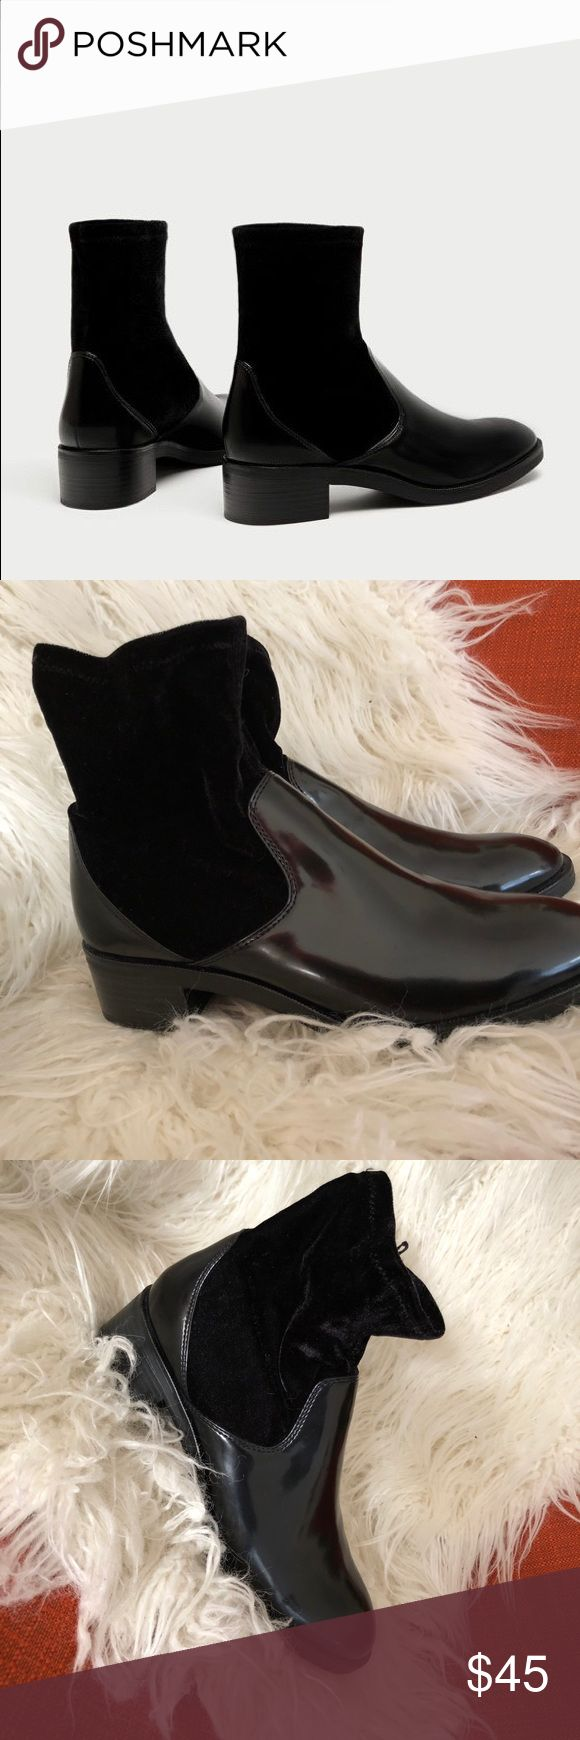 Zara boots Brand new- NBW Zara boots! Size 38 Zara Shoes Ankle Boots & Booties